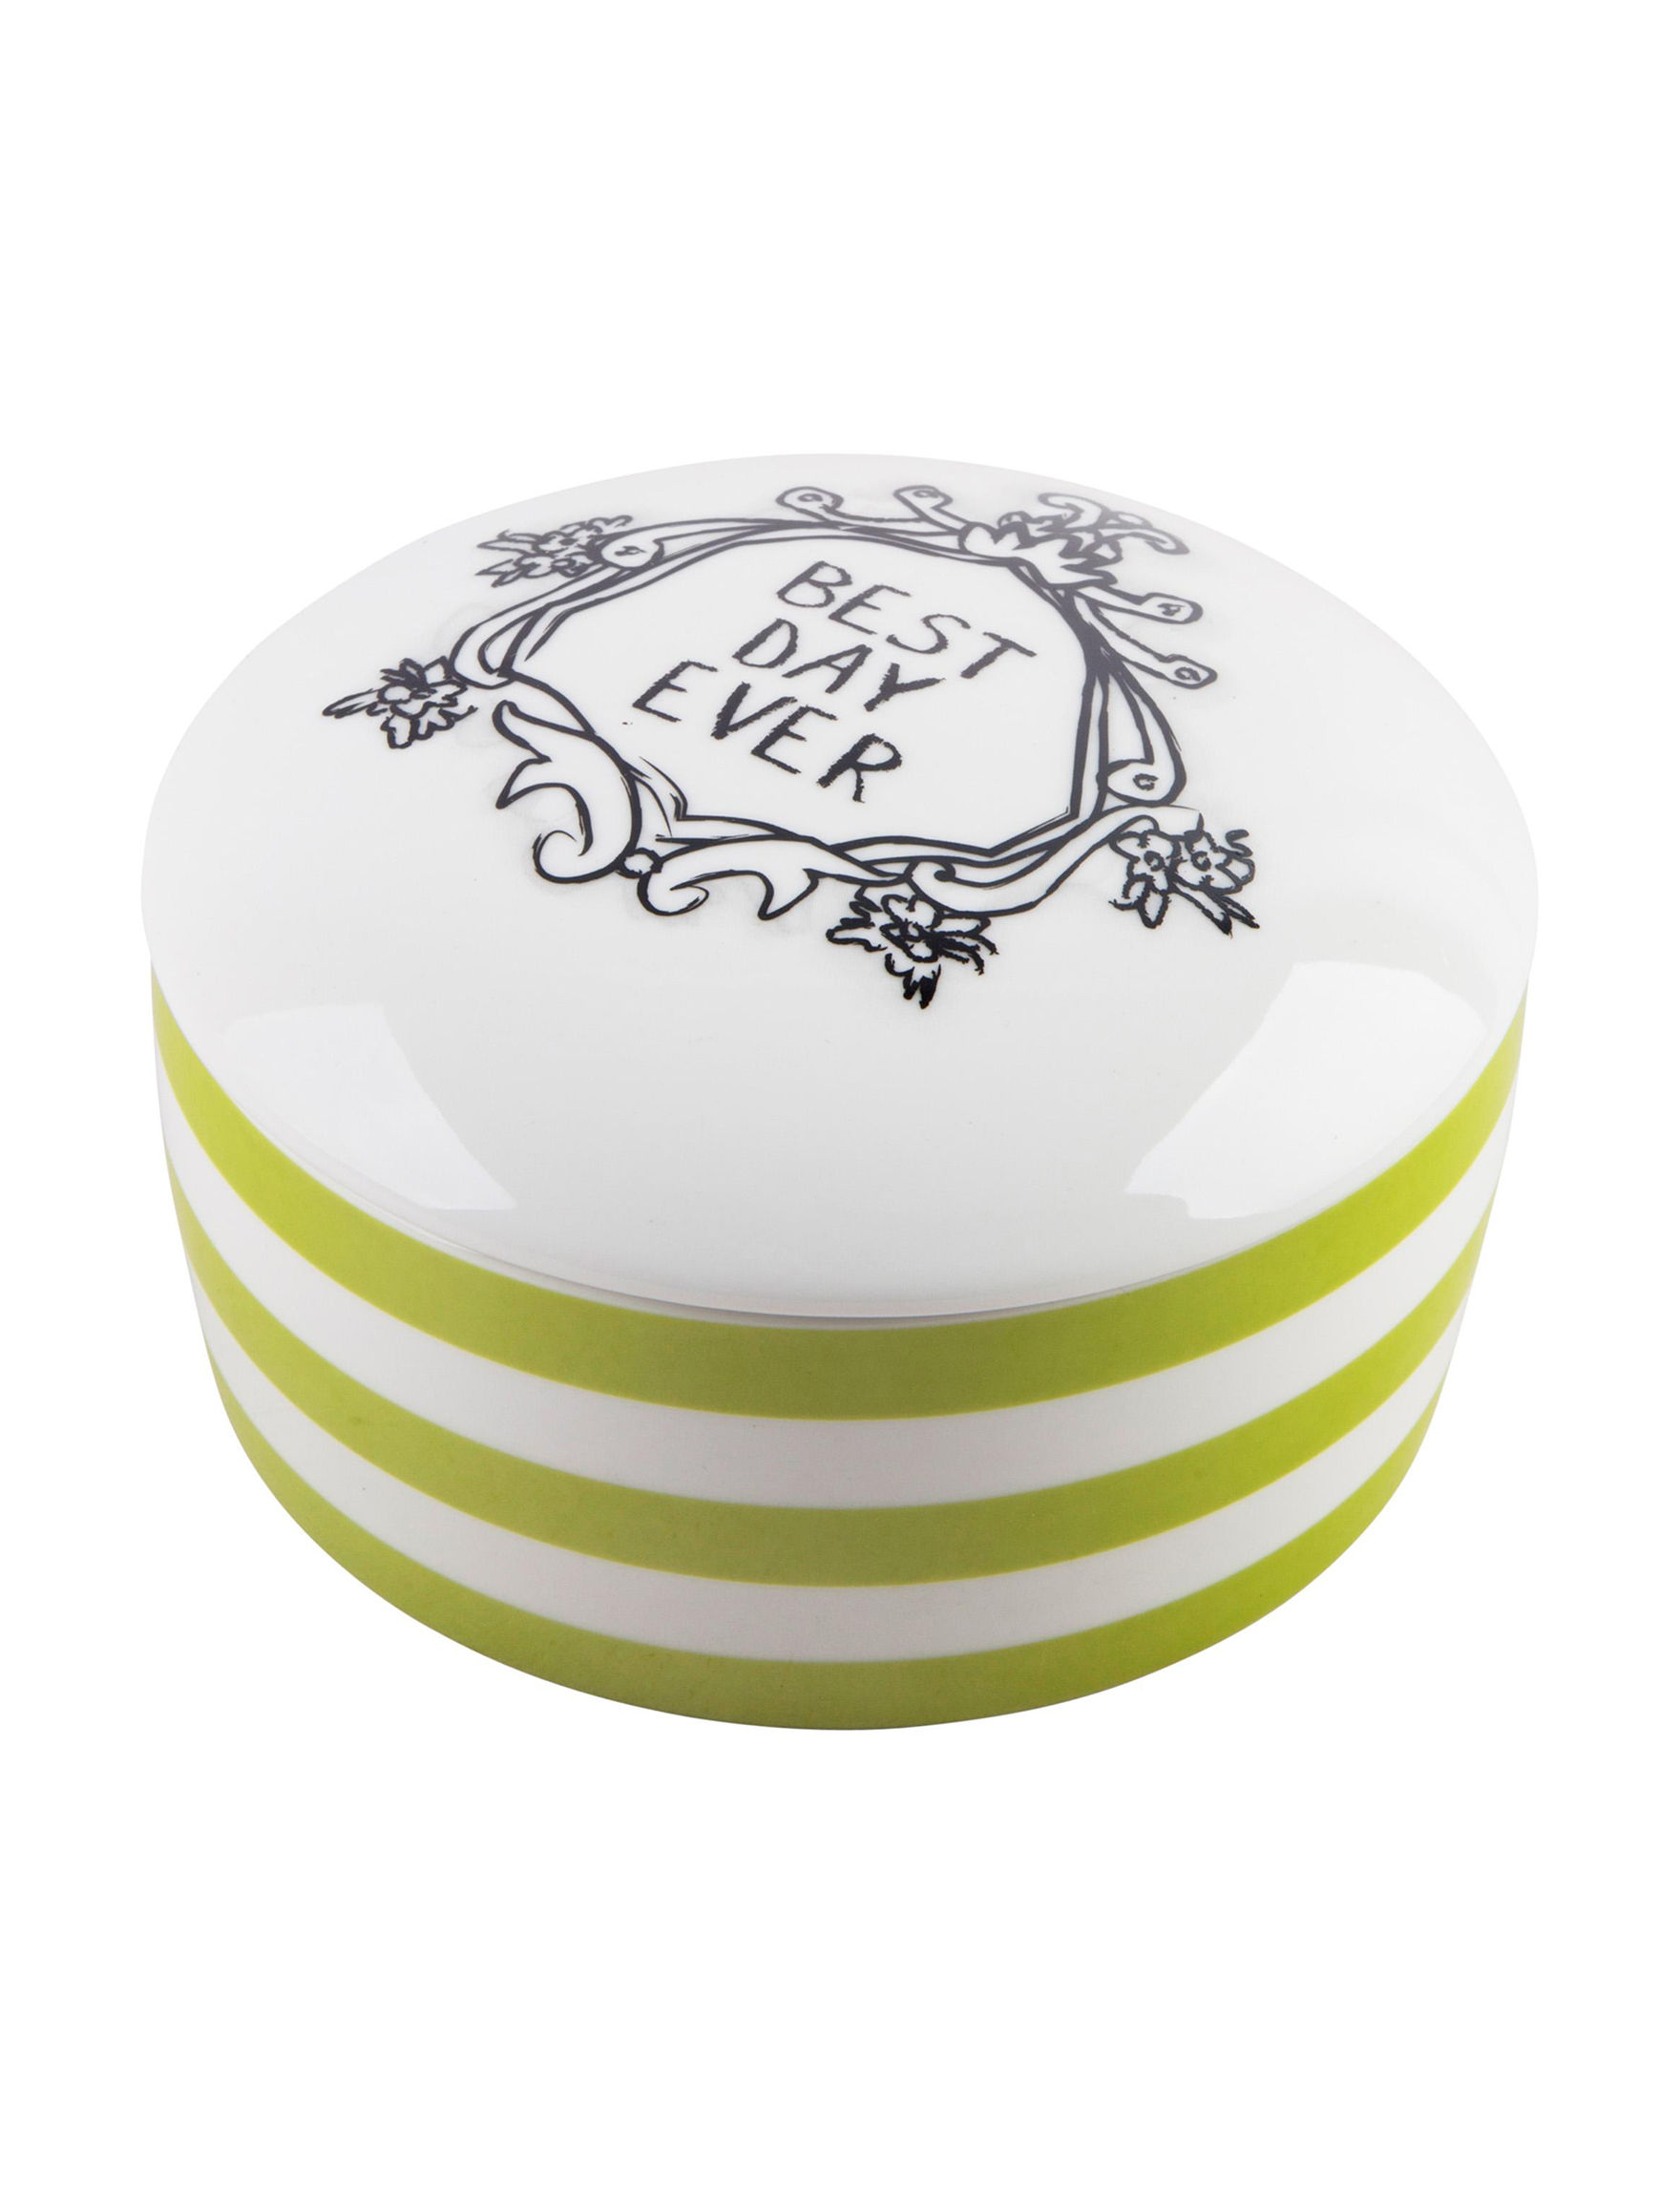 Home Essentials White / Multi Decorative Objects Home Accents